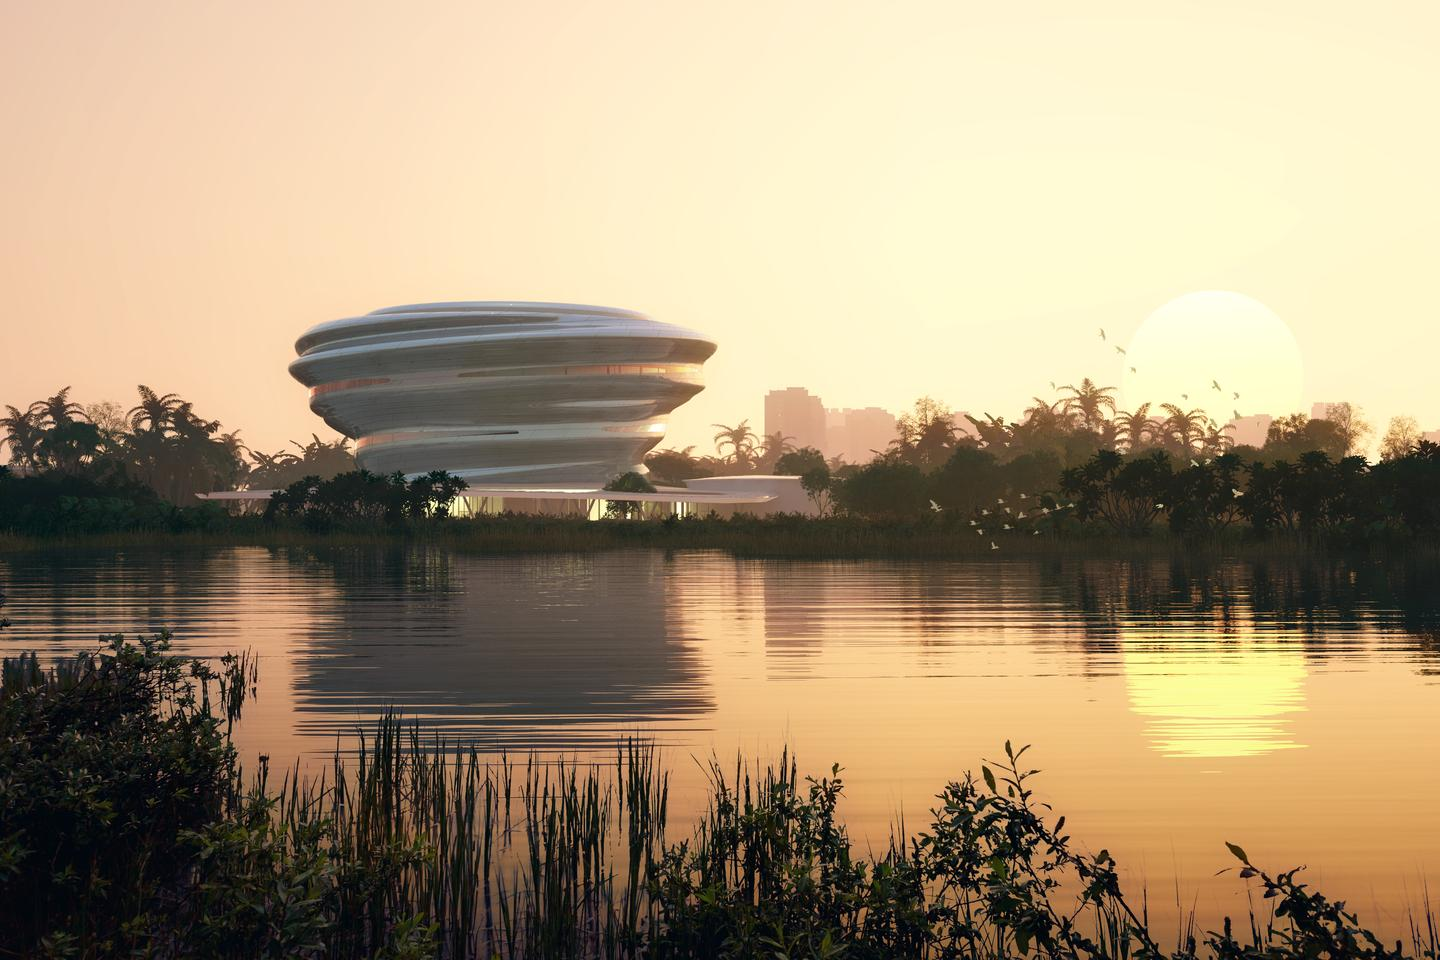 The Hainan Science and Technology Museum is slated to be completed in 2024